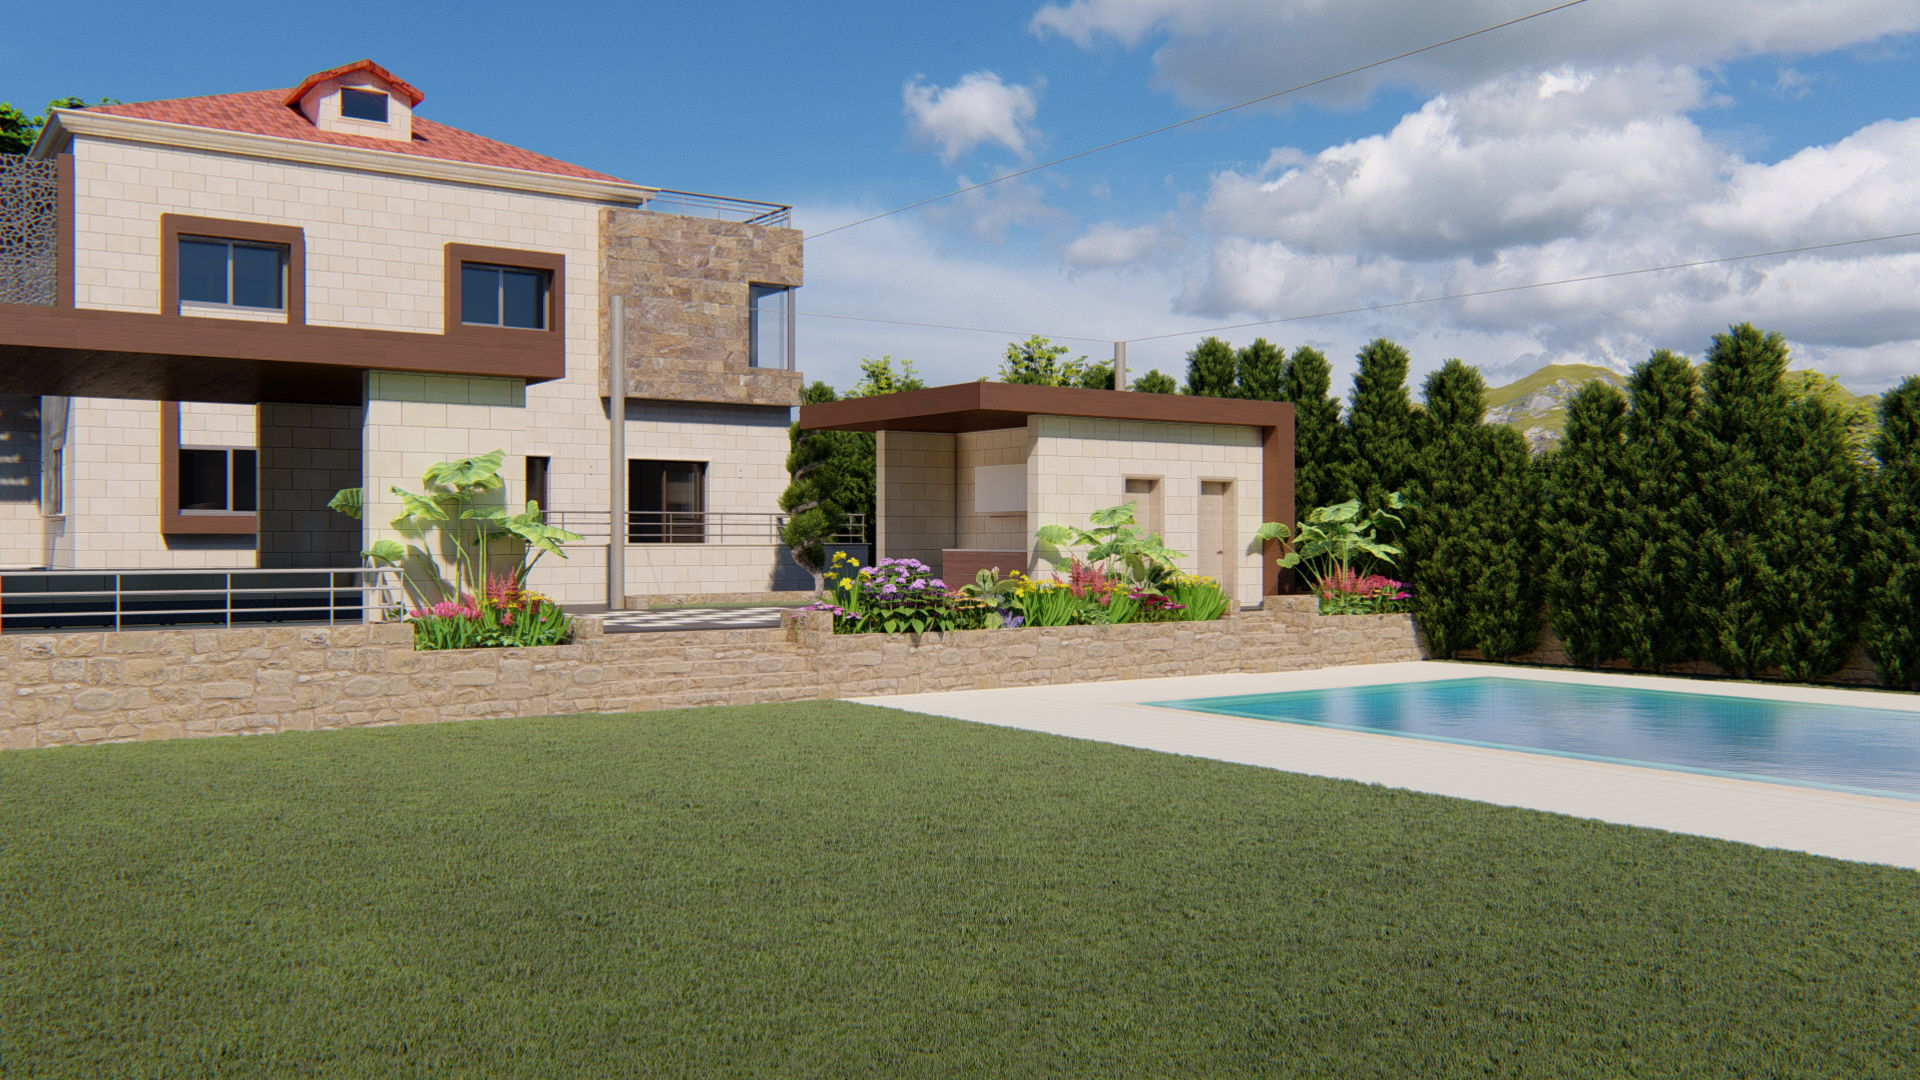 Touairi 78 projects Located in Touairi Village, South Lebanon, is a pool & garden design project with all related mechanical, electrical, structural and architectural tasks.